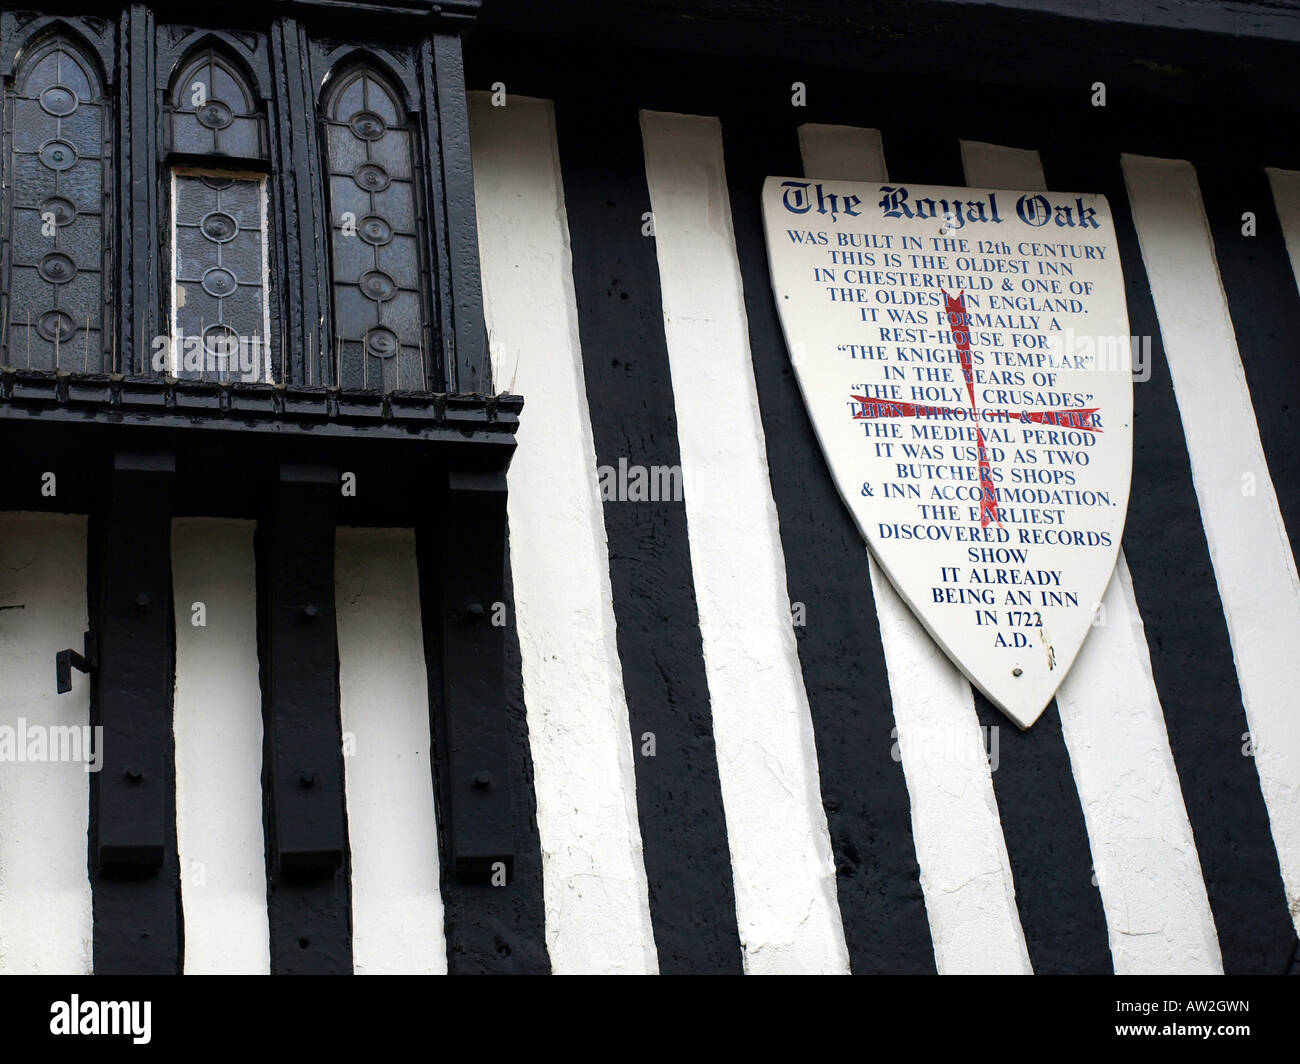 the royal oak and sign explaining history of the building at chesterfield,derbyshire,uk. - Stock Image